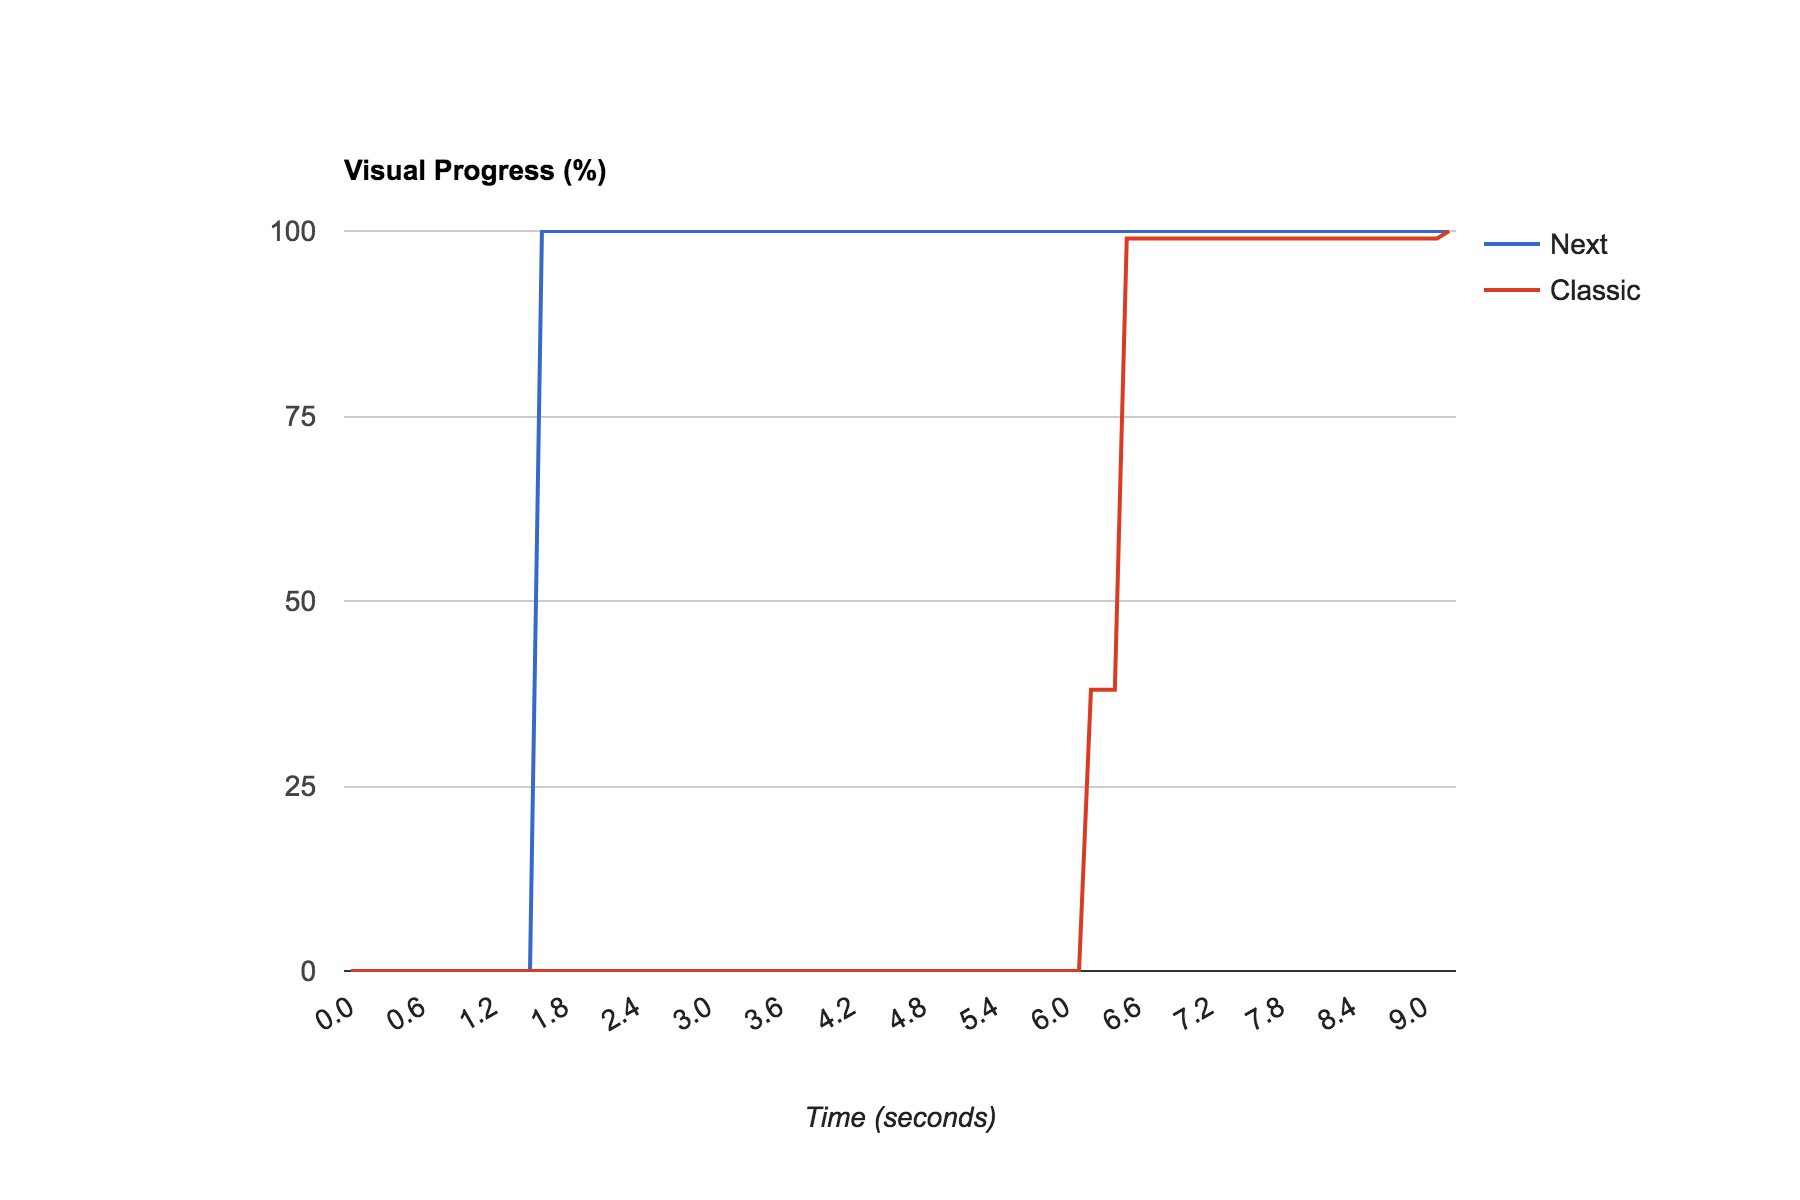 Next vs Classic page load times